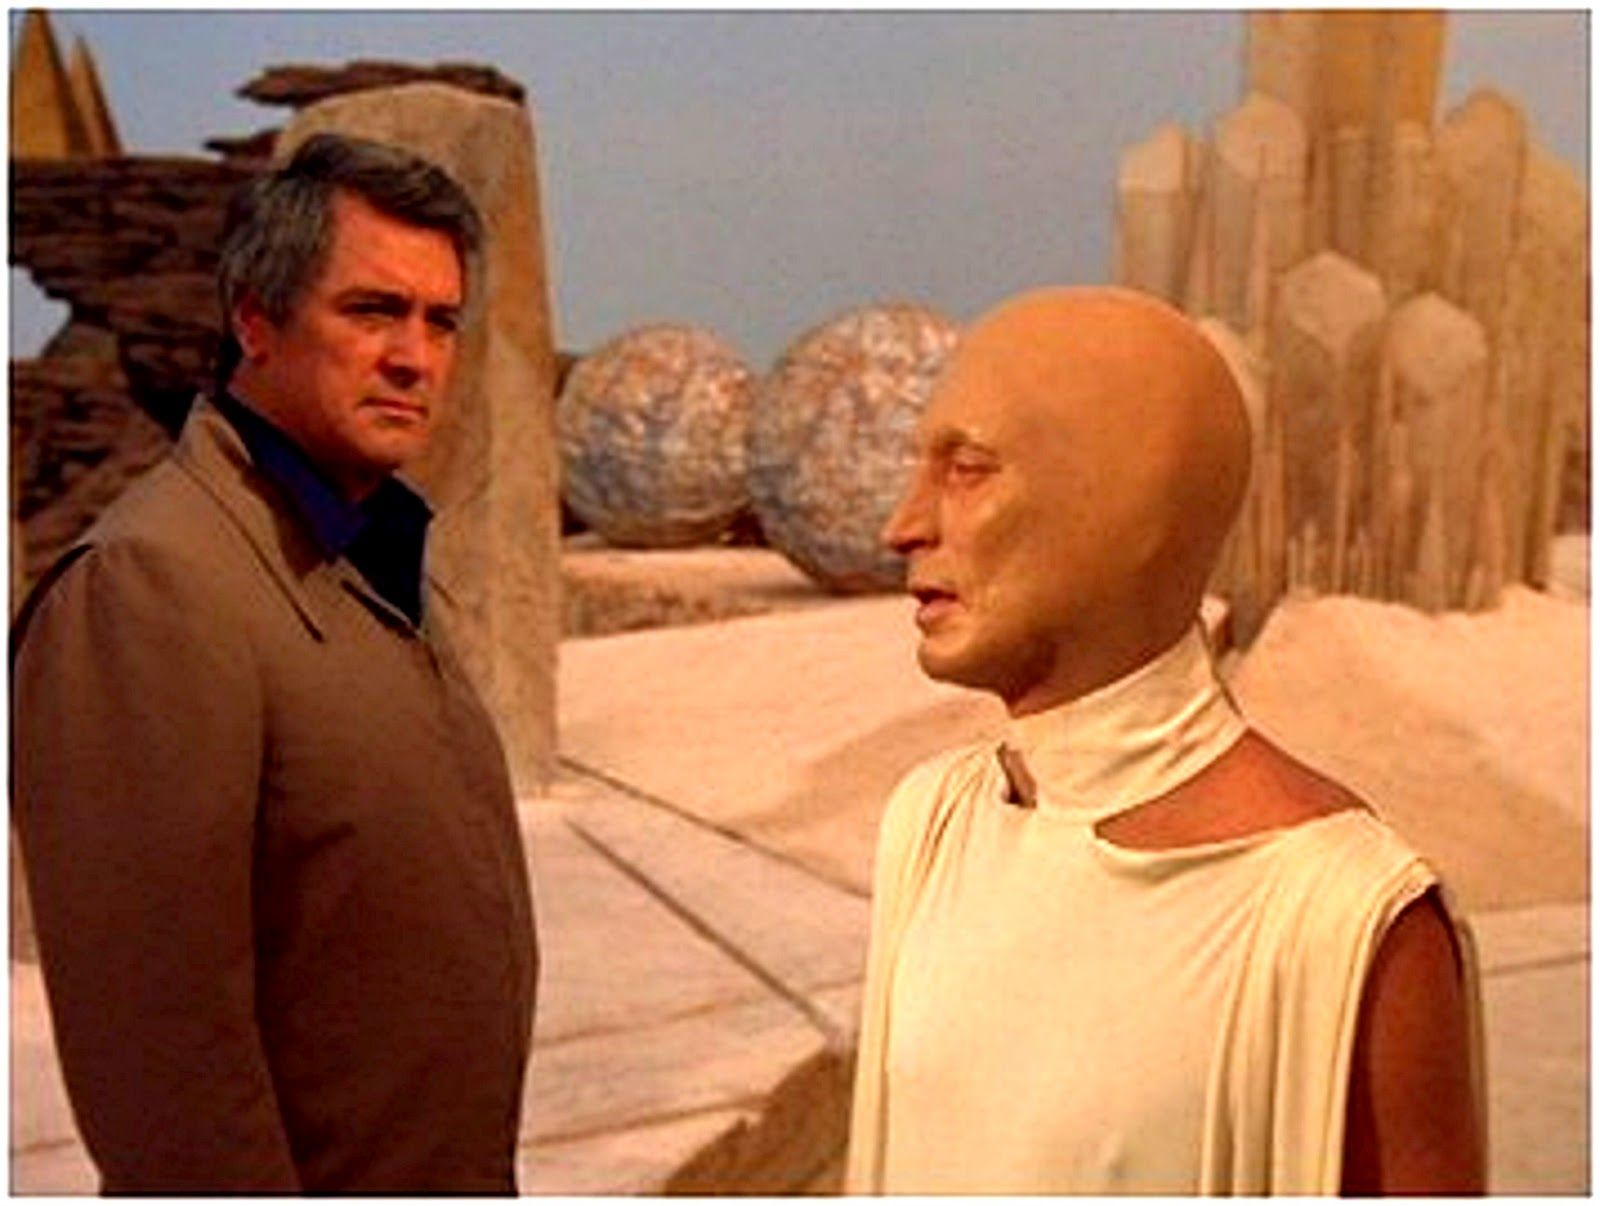 Rock Hudson meets with the last Martian in The Martian Chronicles (1980)